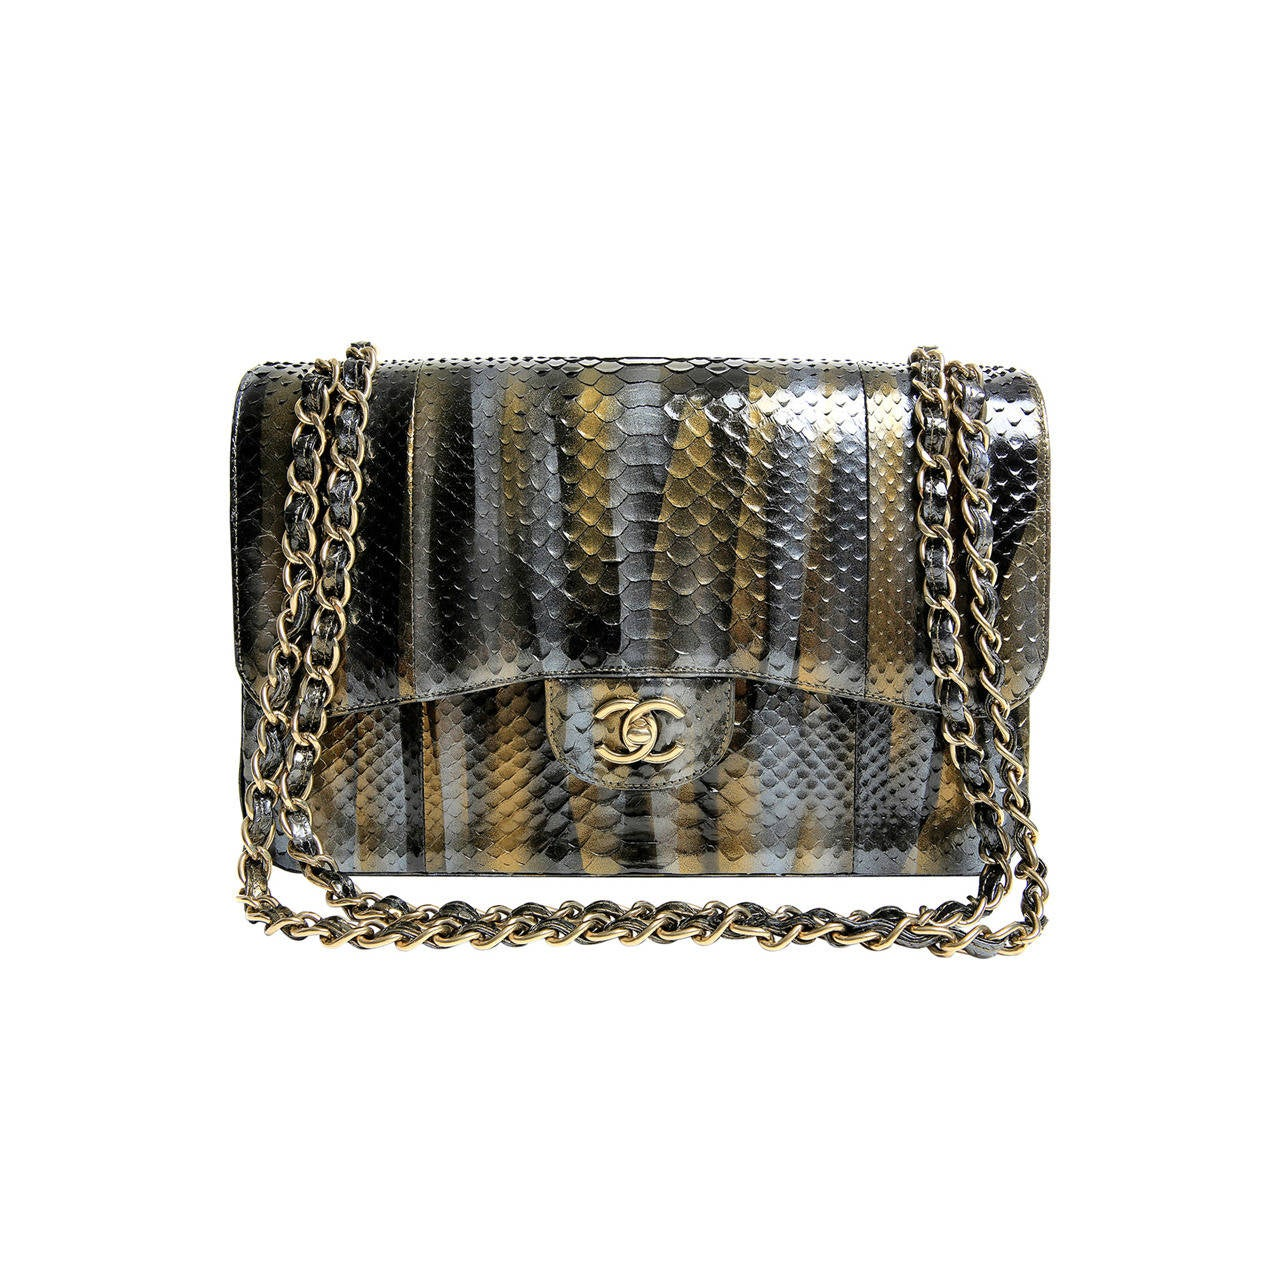 Chanel Jumbo Classic Metallic Python- Double Flap For Sale